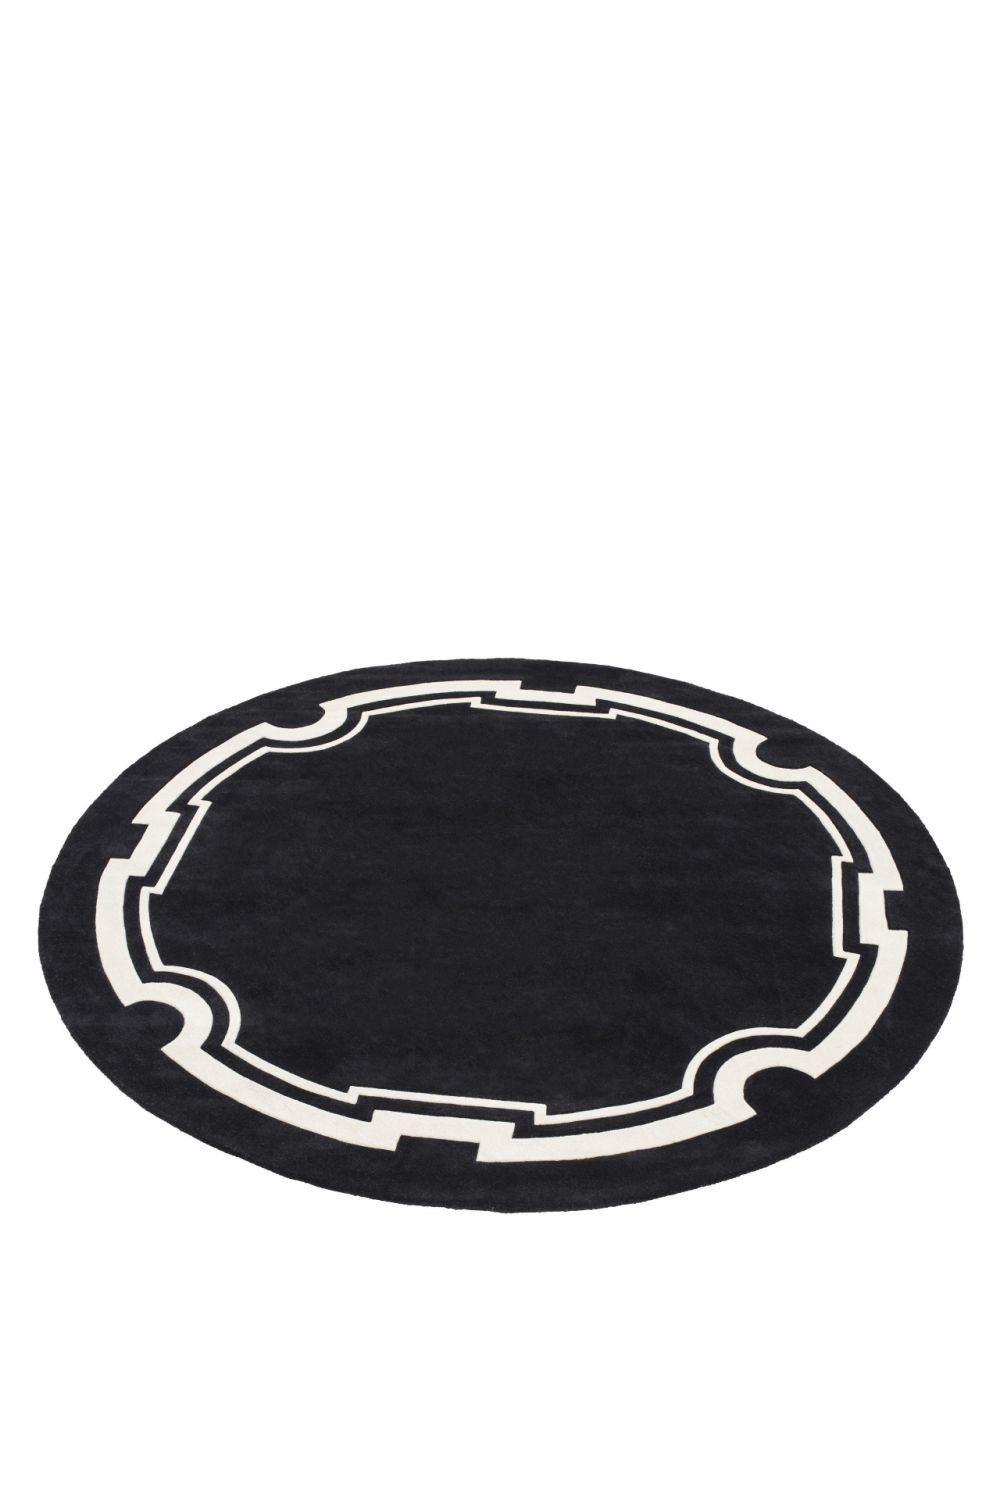 Black and Off White Rug | Eichholtz Palazzo | #1 Eichholtz Retailer